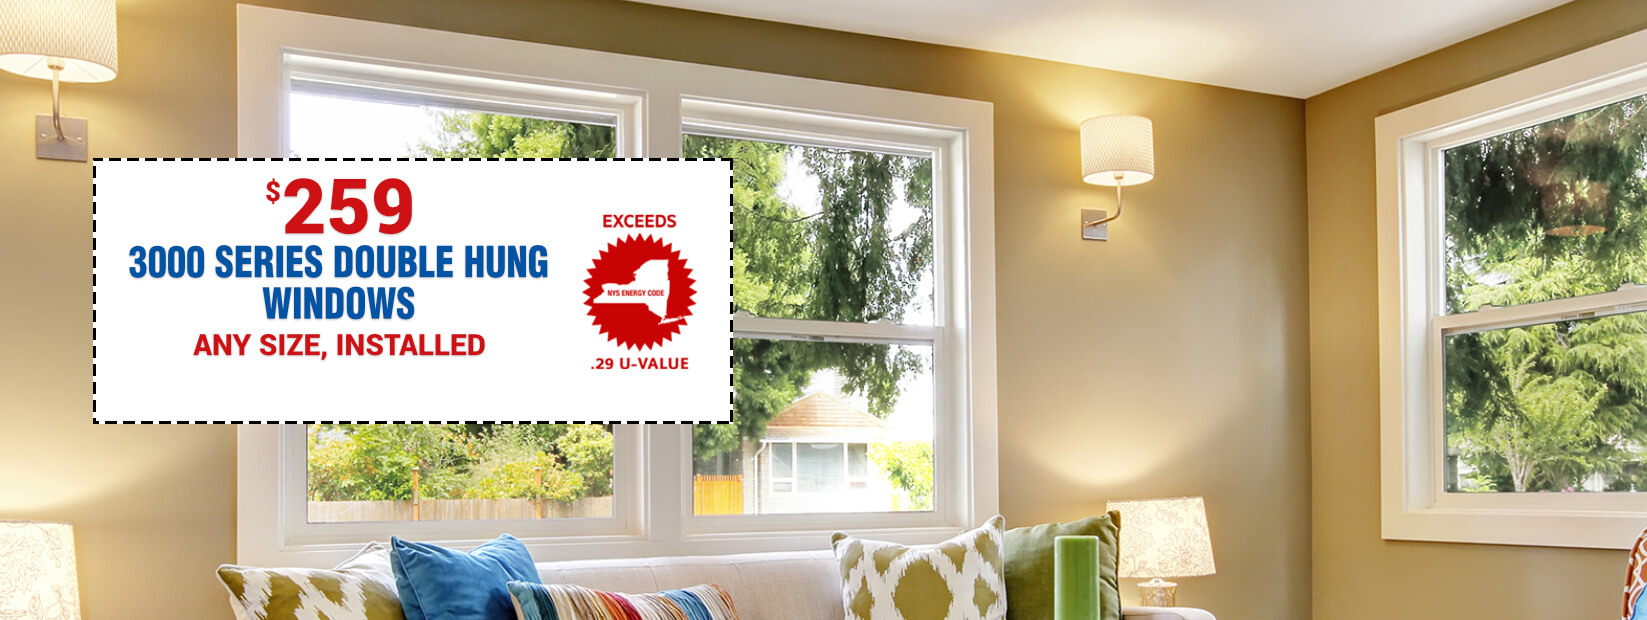 3000 Series Double Hung Windows $259